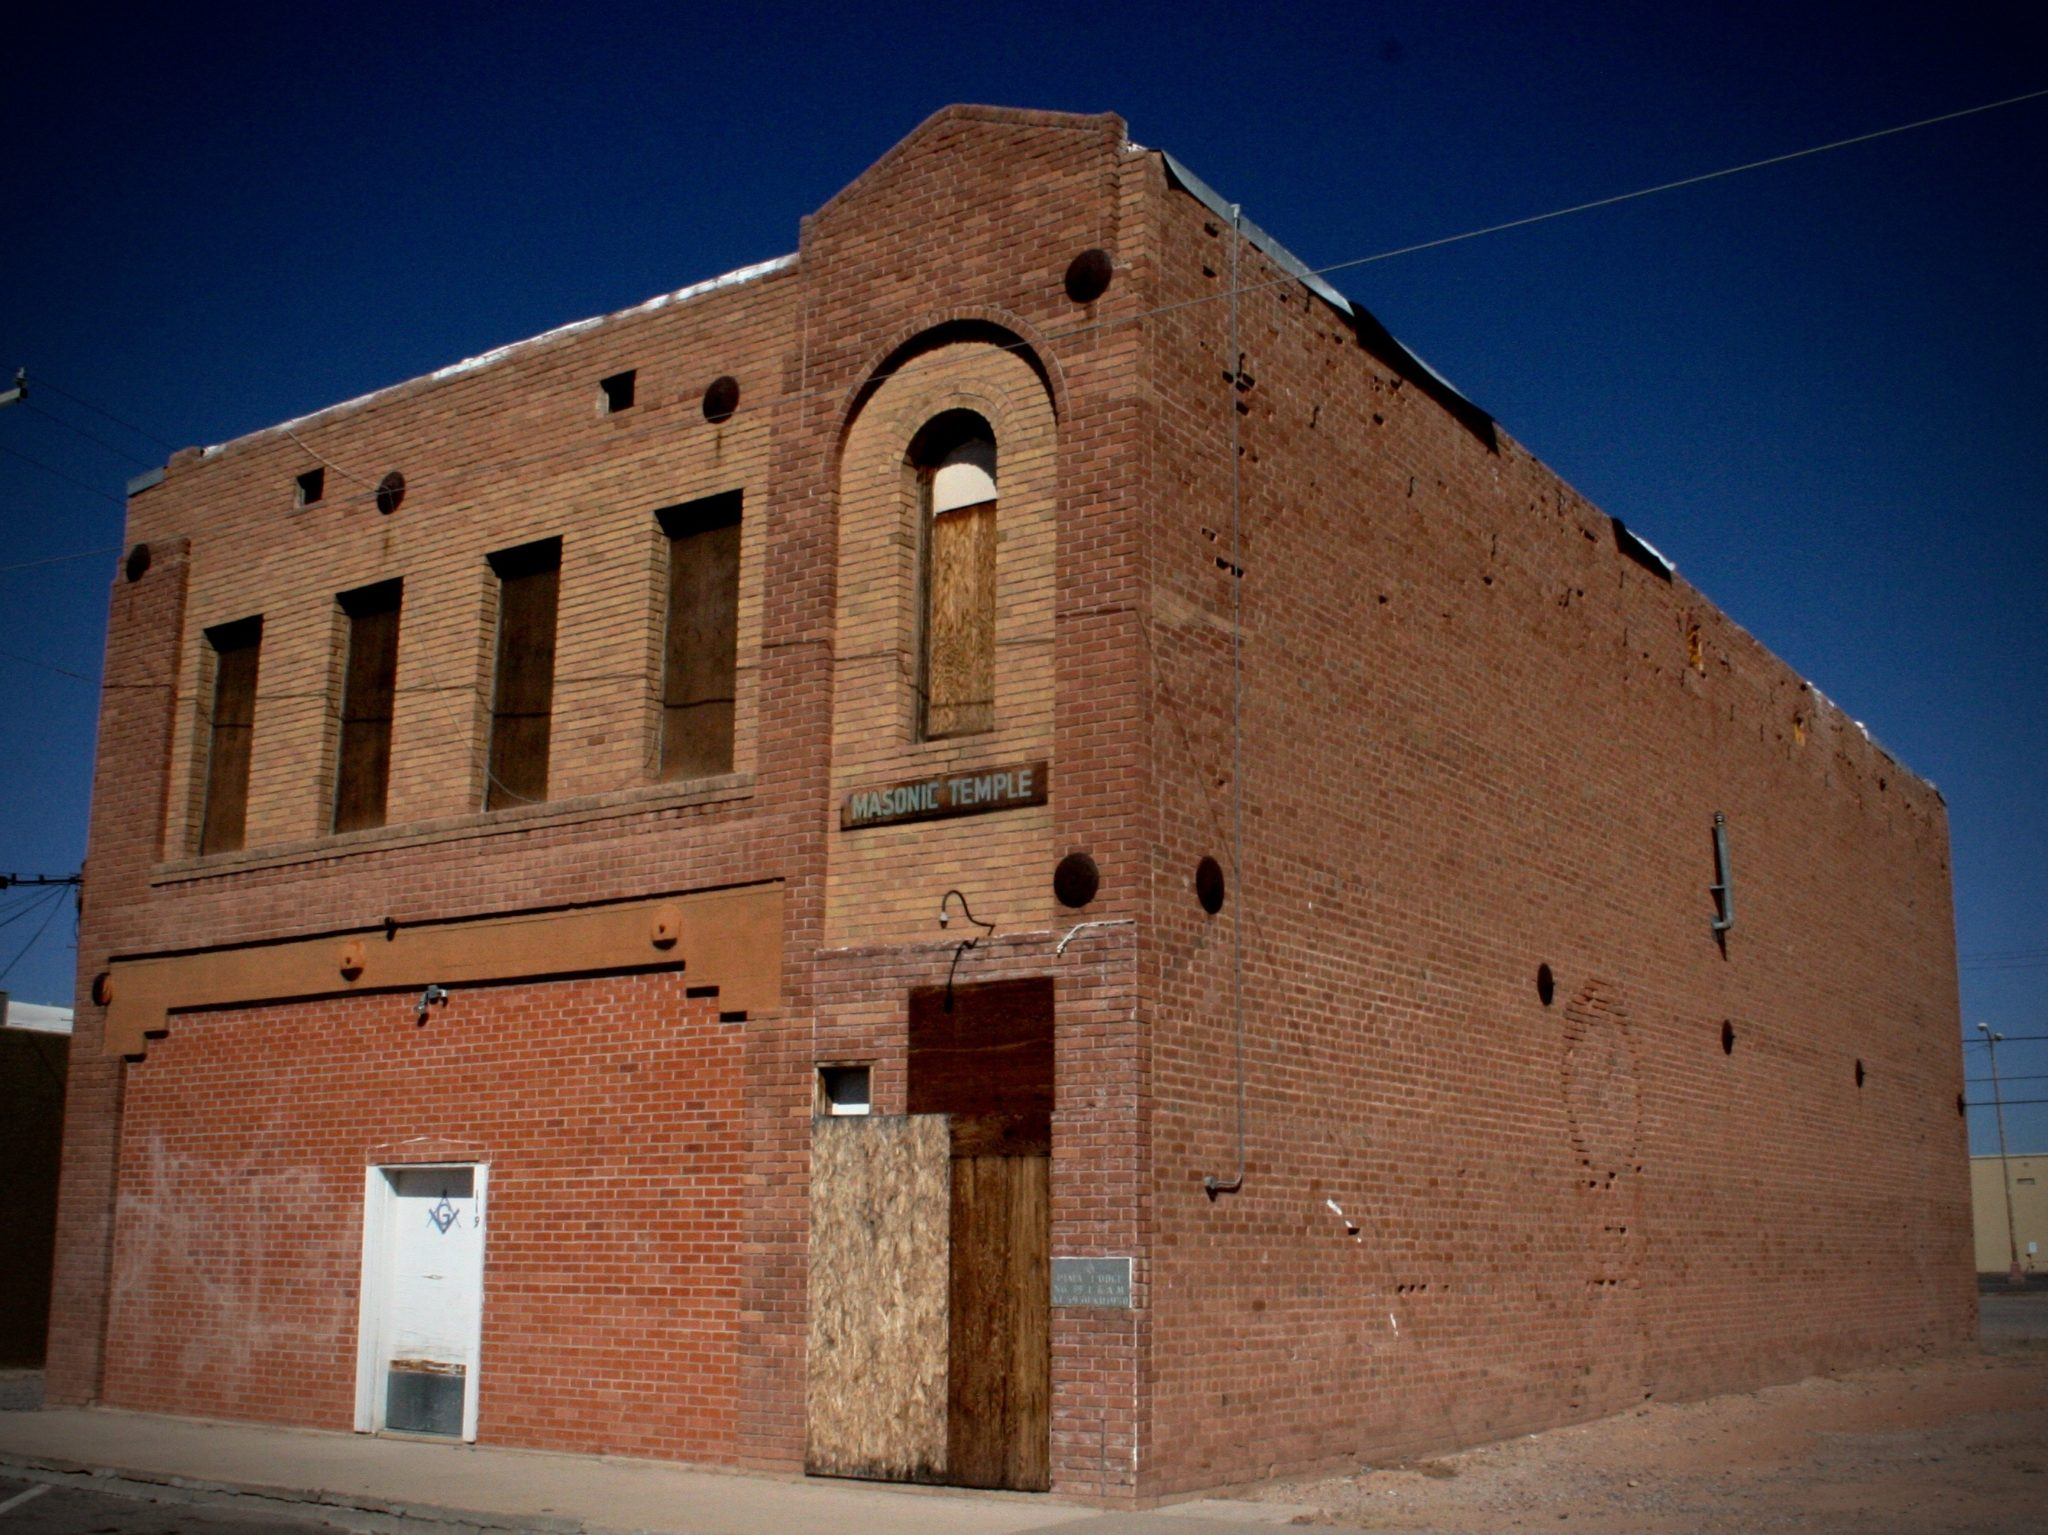 Abandoned Freemason Temple in Coolidge AZ